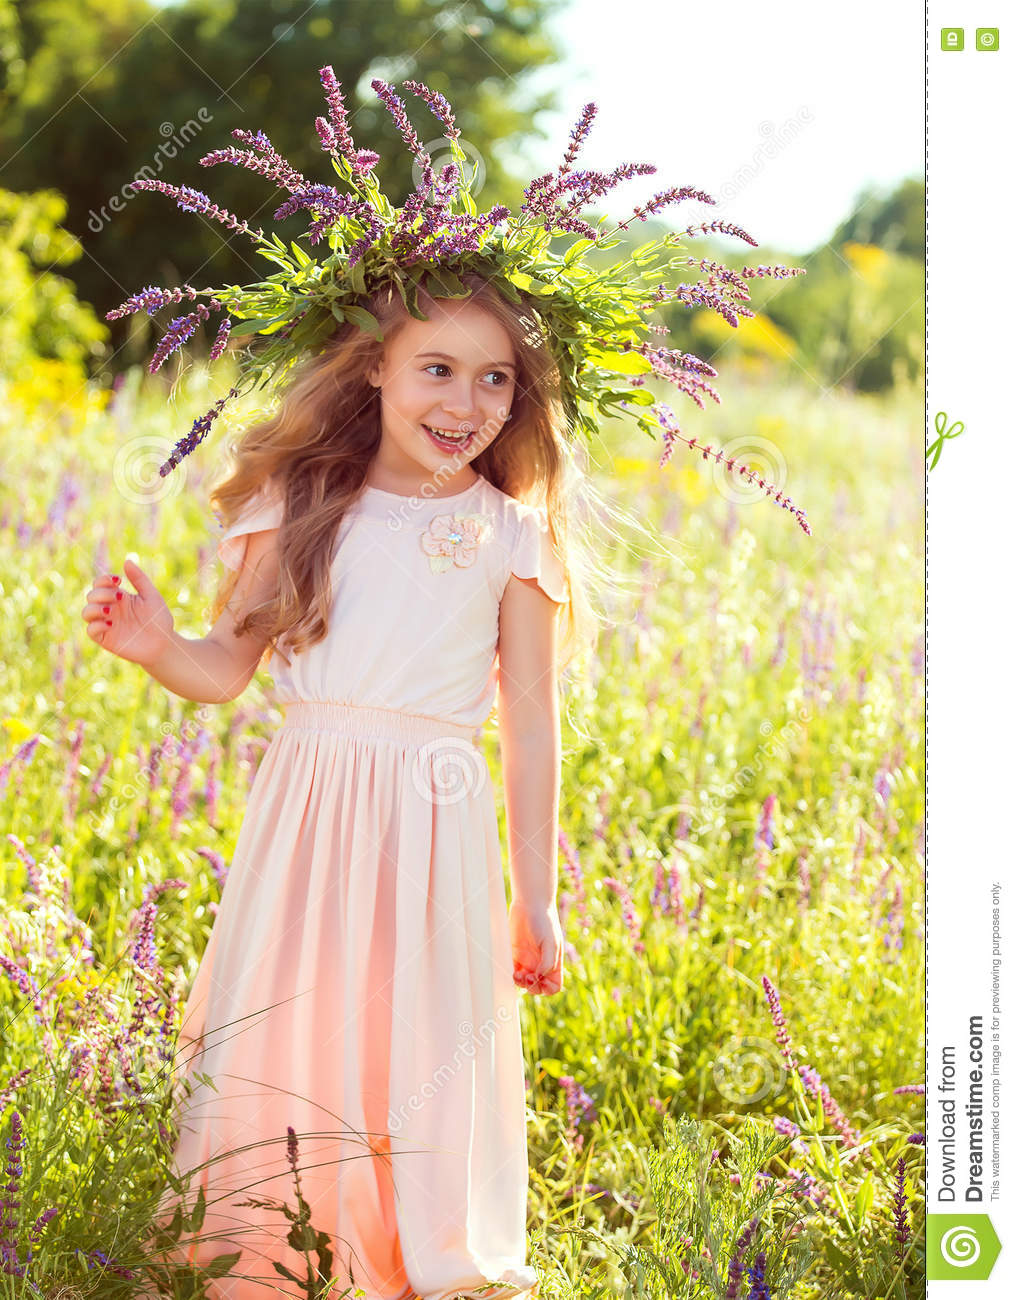 Girl in peach dress, with a wreath of wildflowers.